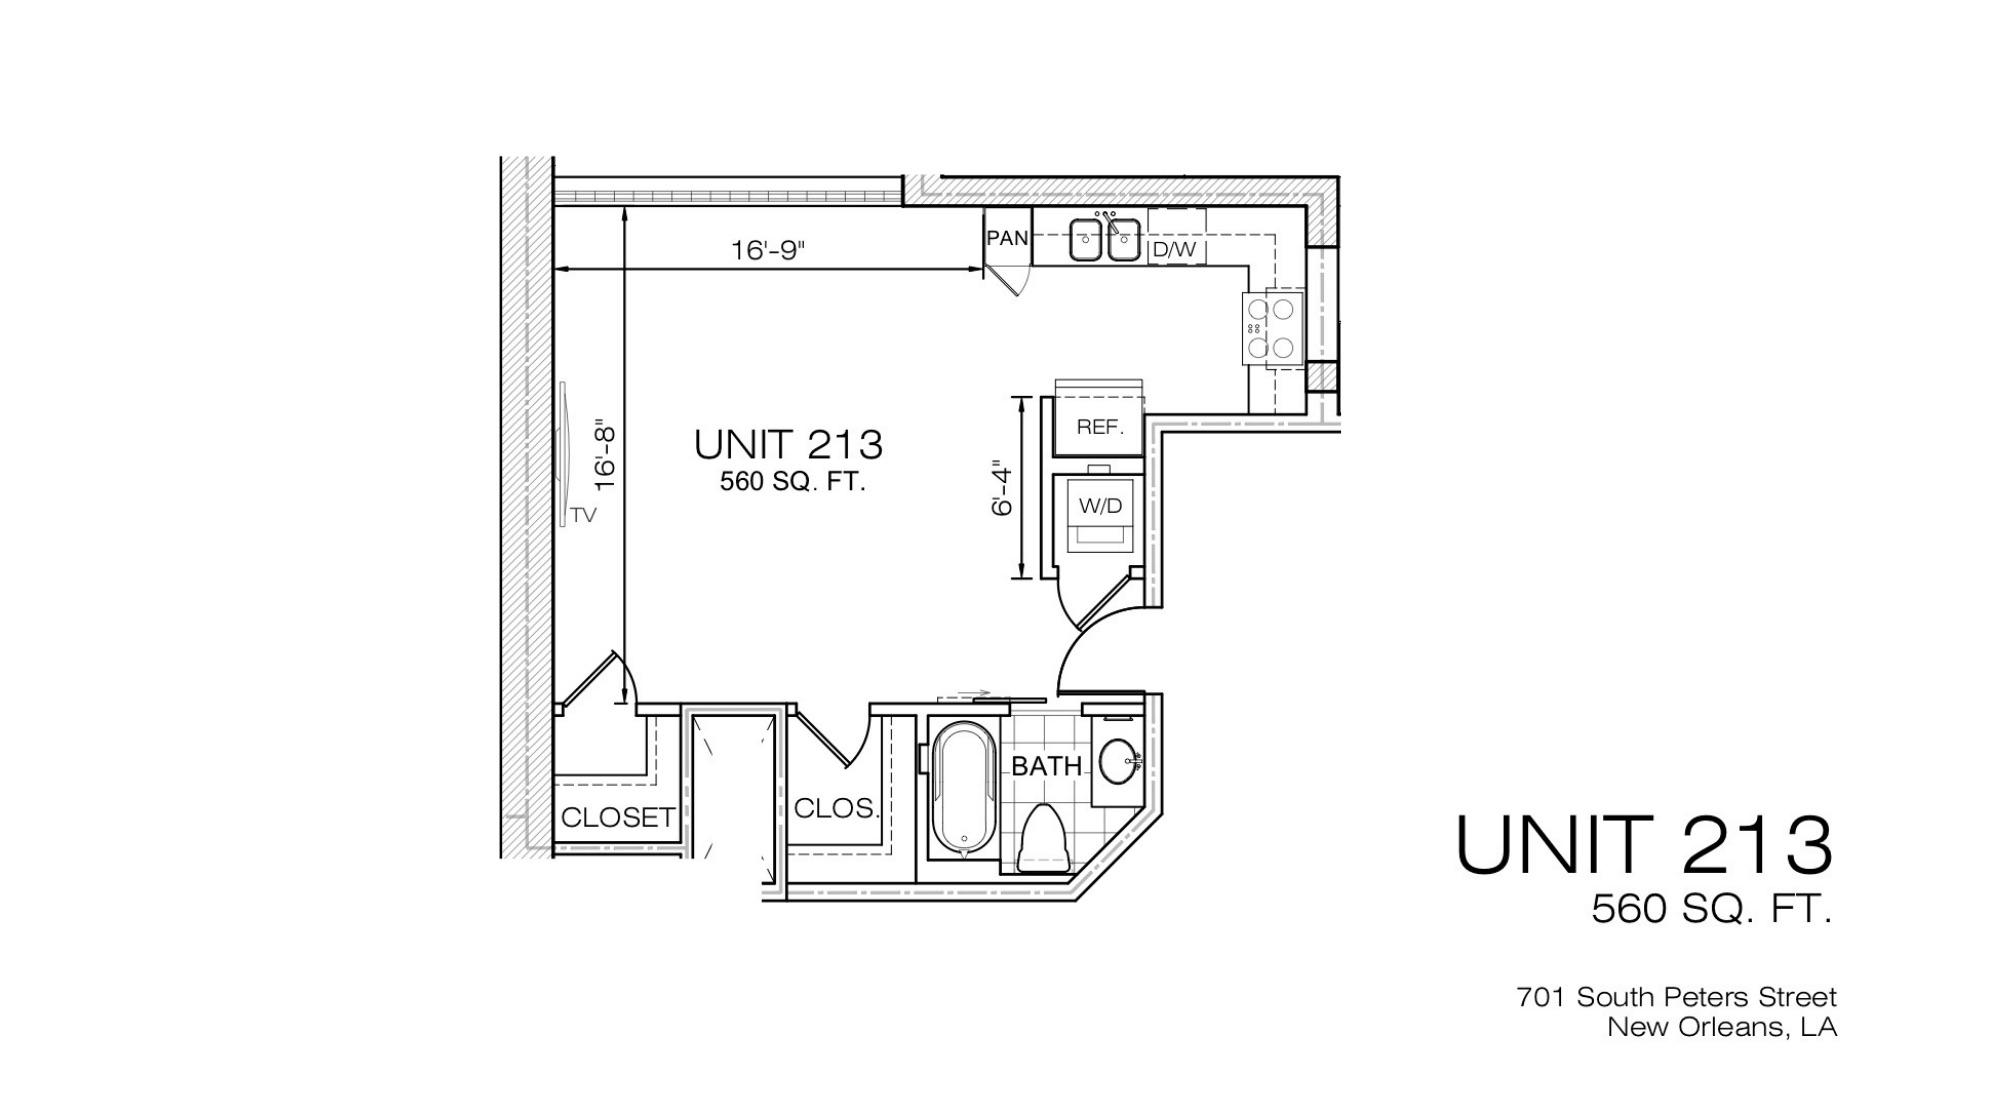 701 S. Peters Refinery Unit 213 Floor Plan